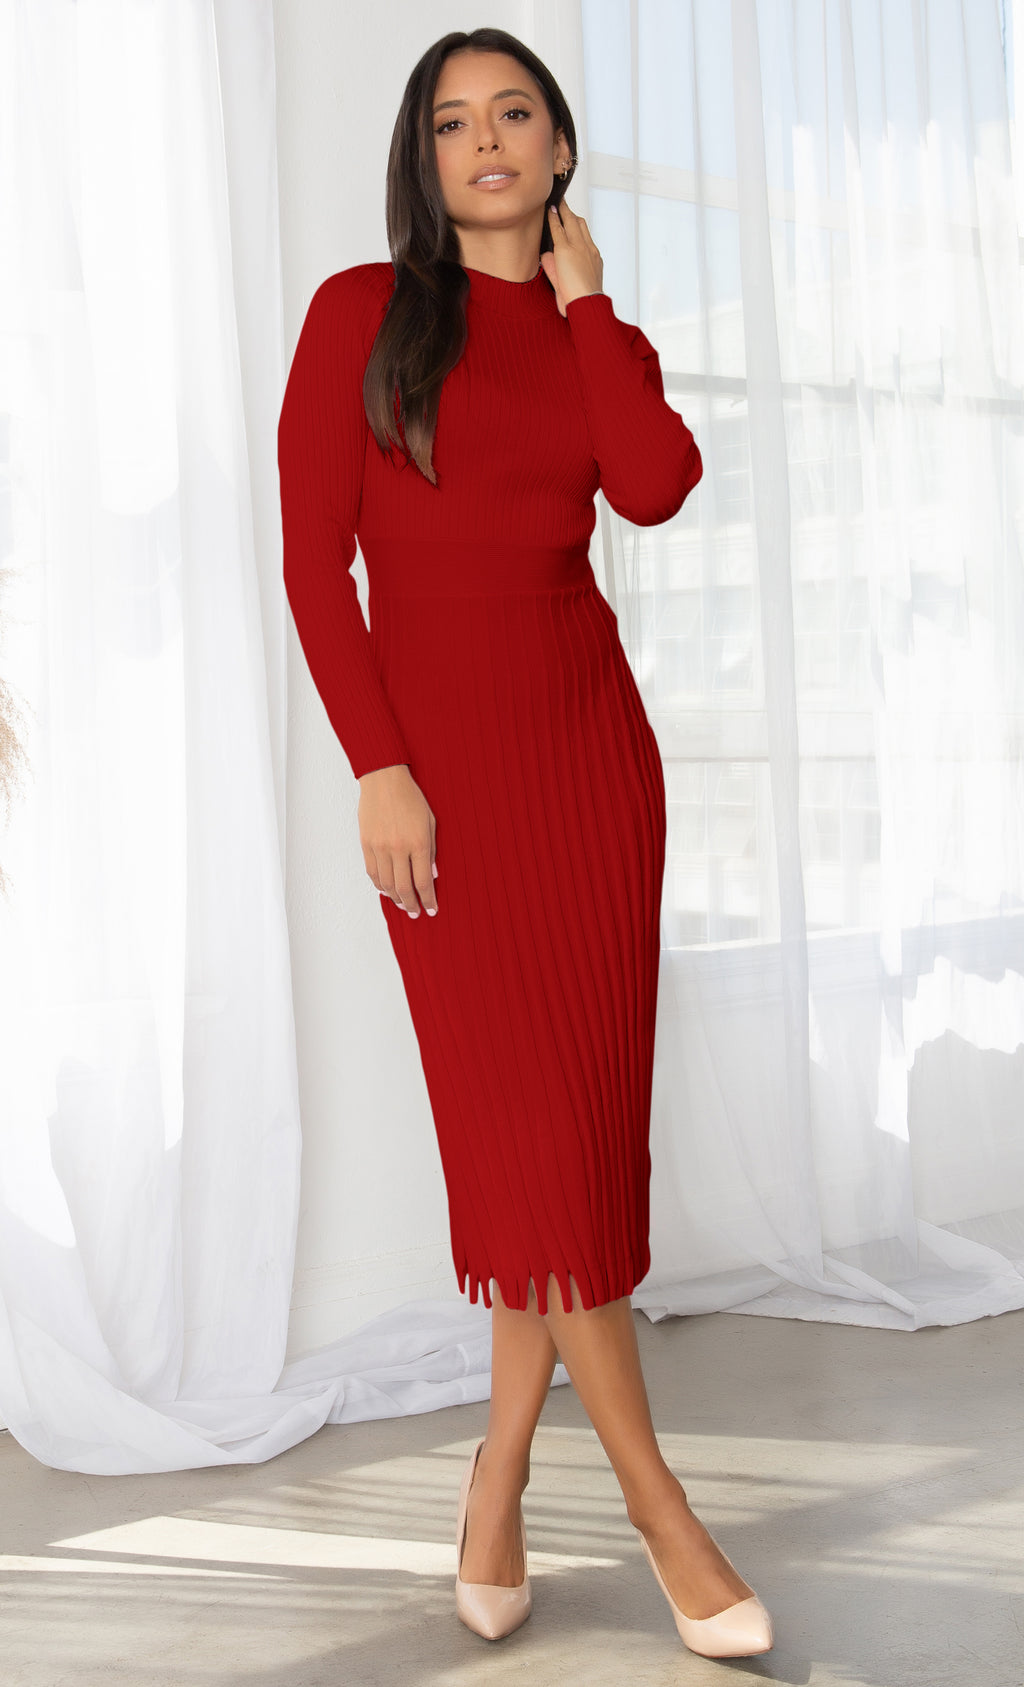 All You Want Red Pleated Crew Ribbed Round Neck Modest Long Sleeve Stretch Knit Body Con Sweater Midi Dress